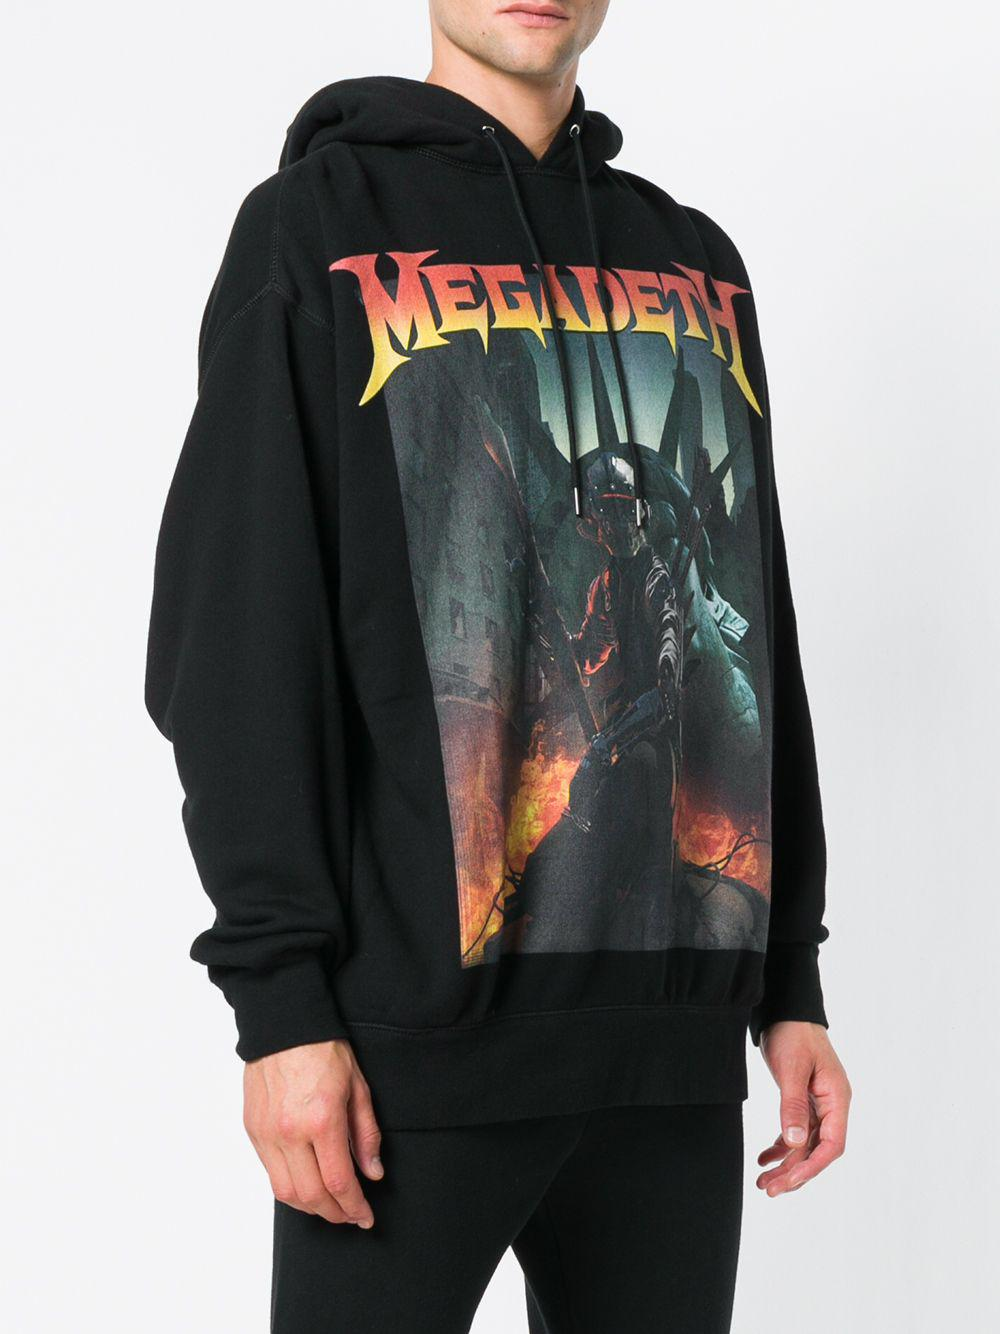 e688d4fc5ca4 R13 Megadeth Hoodie in Black for Men - Save 61% - Lyst